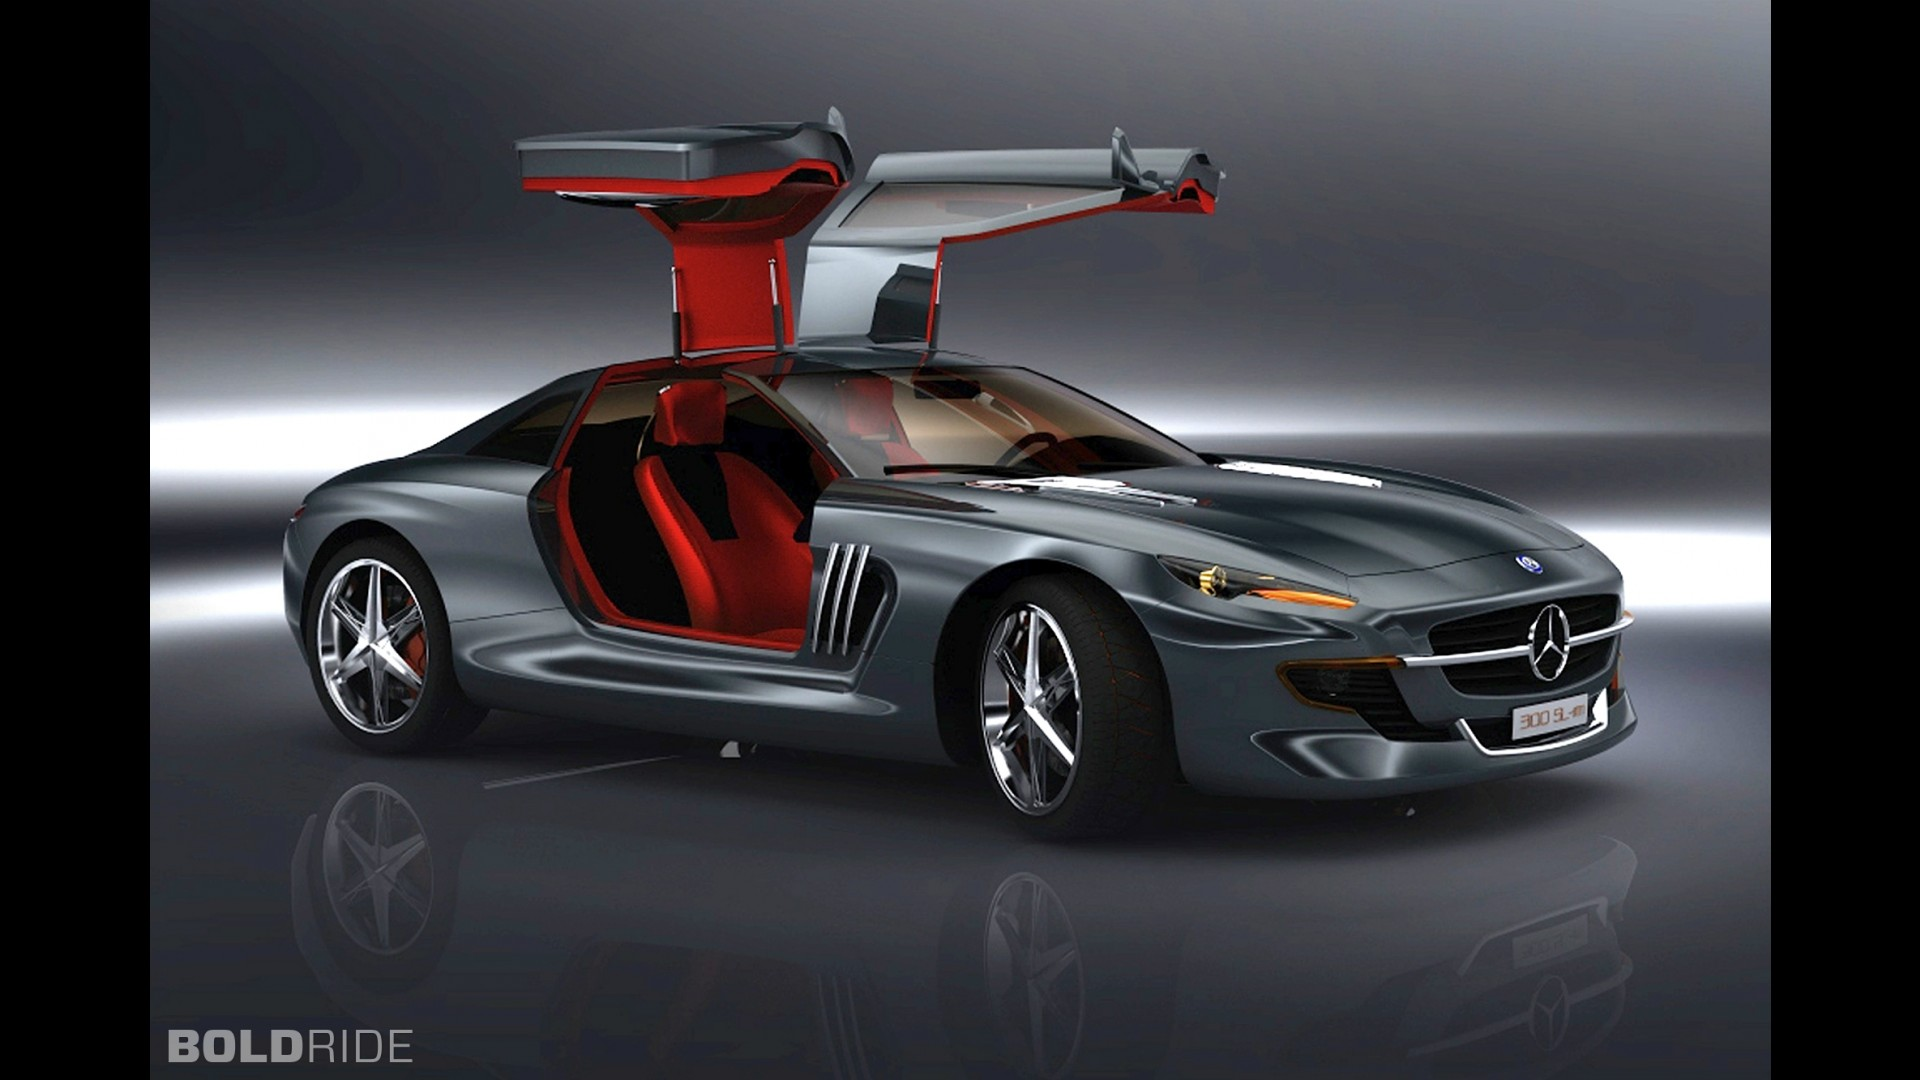 Mercedes benz 300 sl gullwing concept by slimane toubal for Mercedes benz sl 300